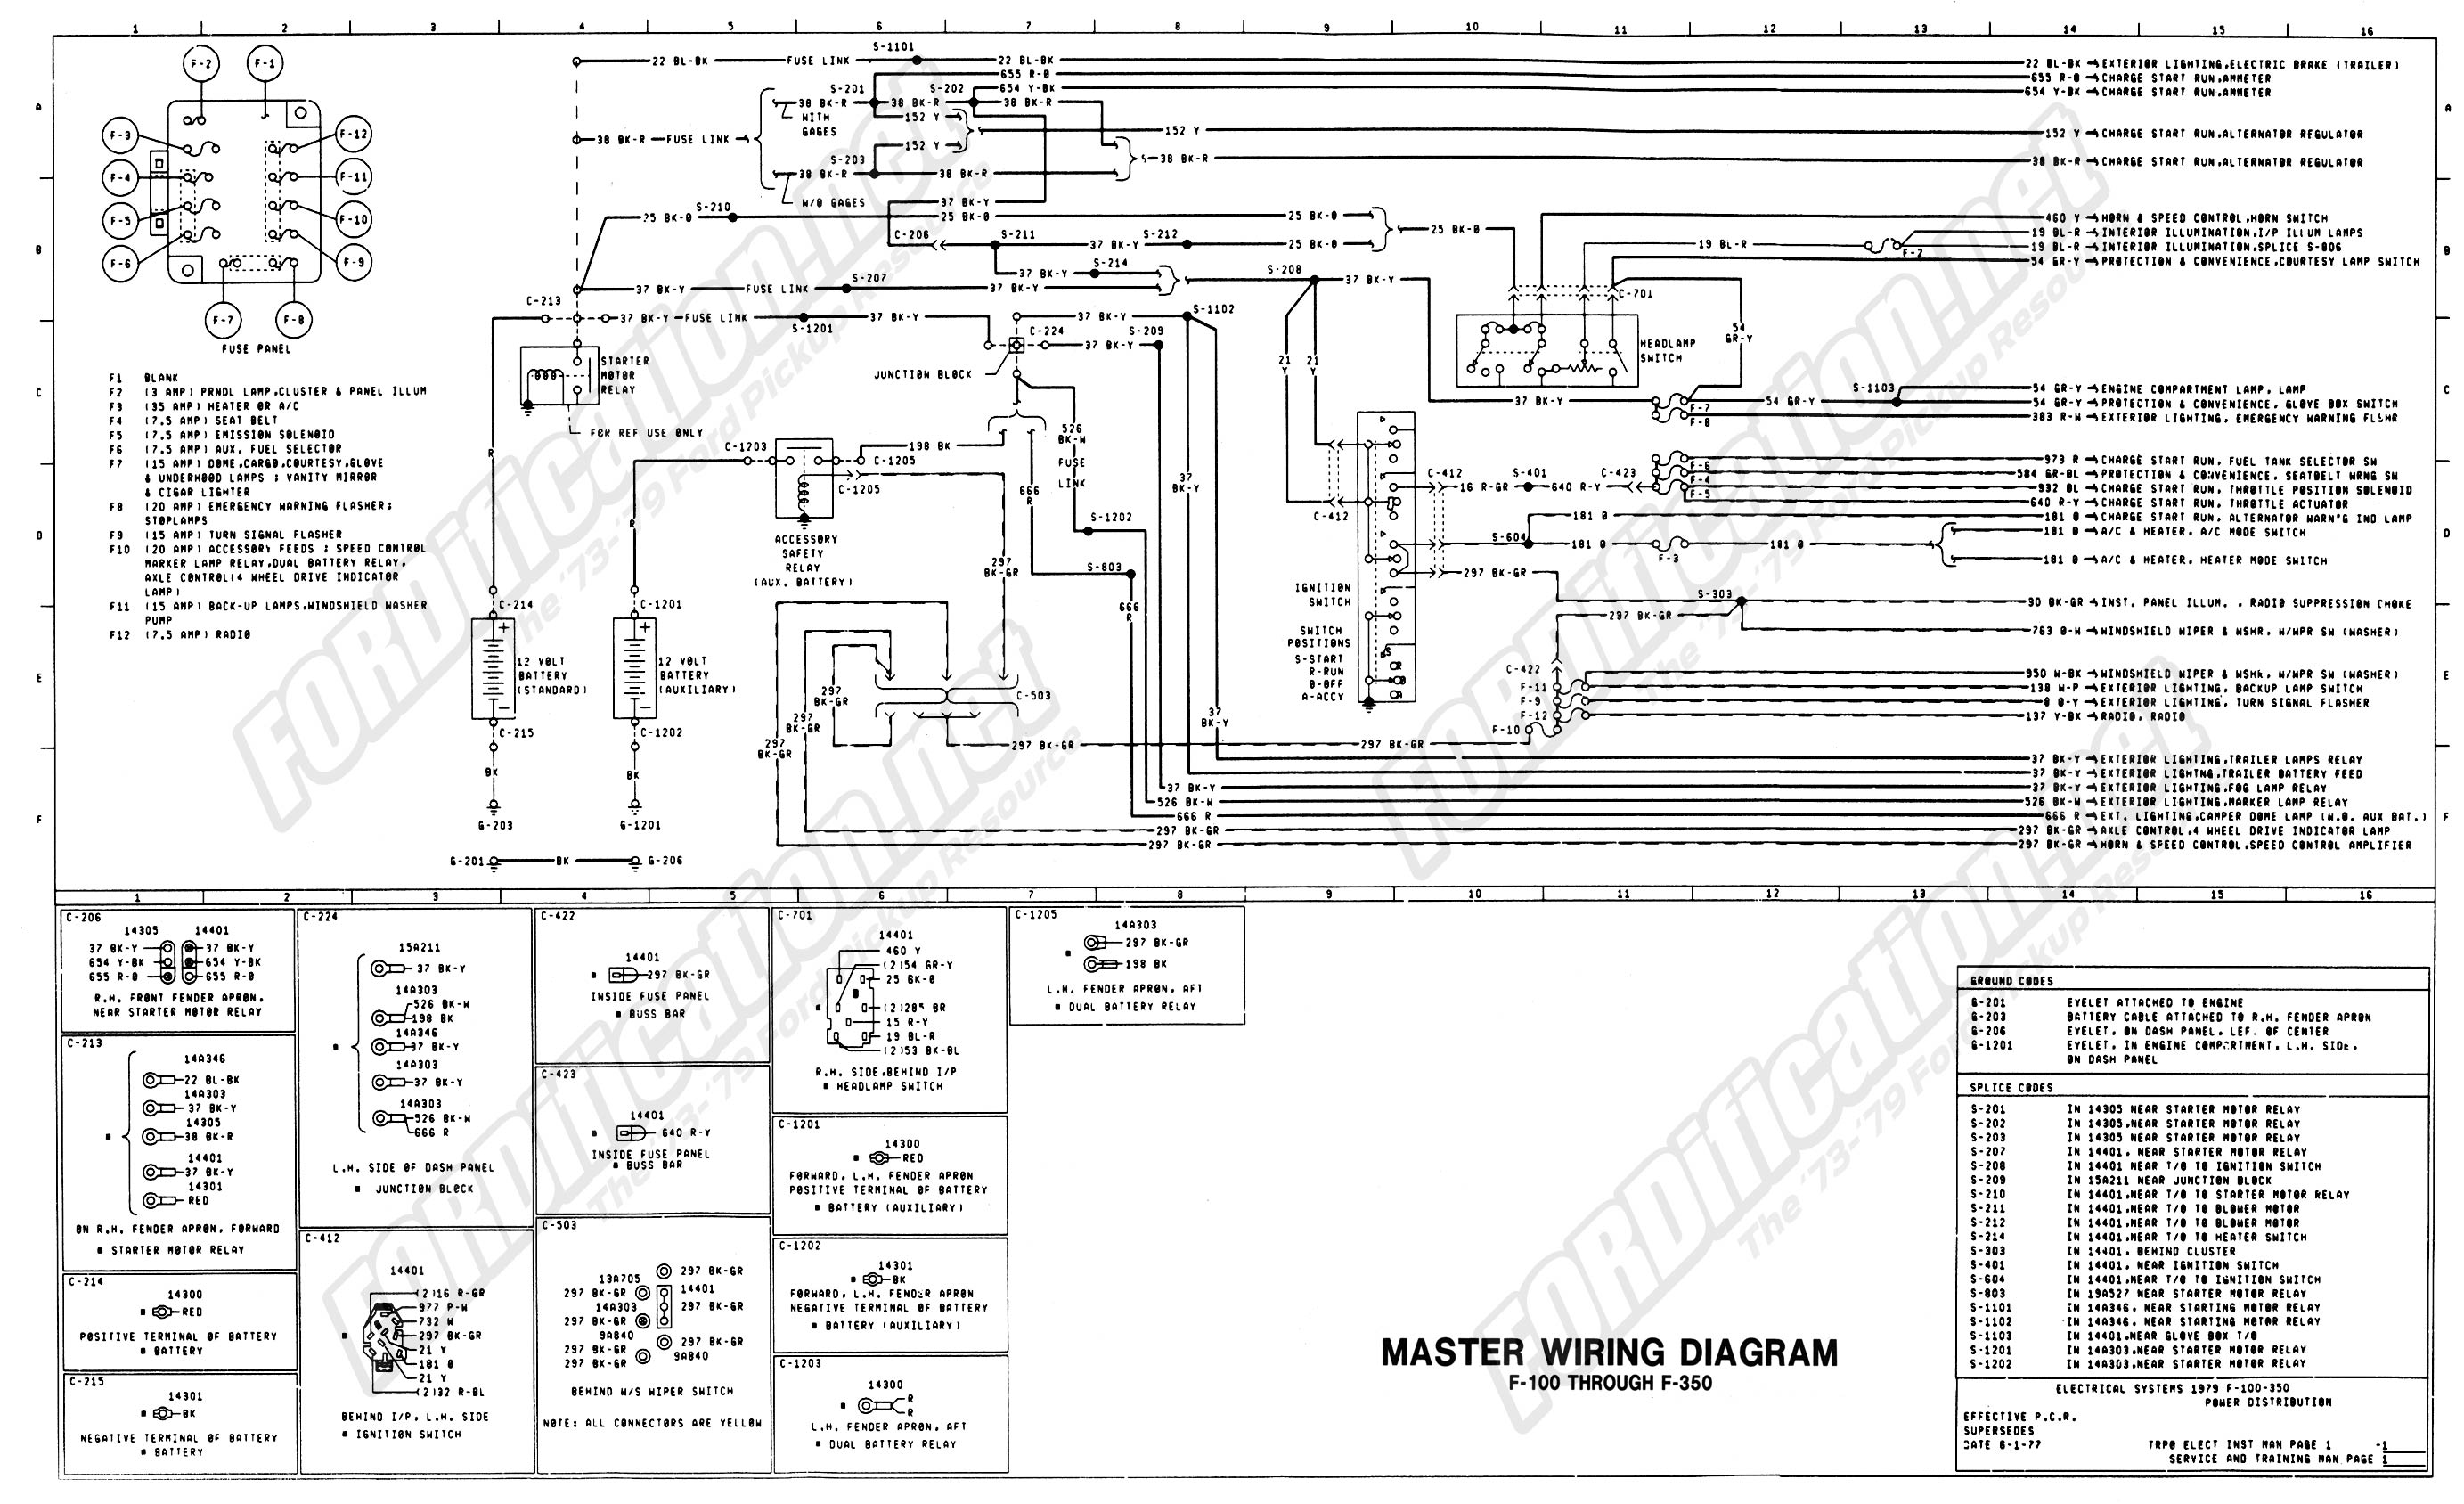 wiring_79master_1of9 1973 1979 ford truck wiring diagrams & schematics fordification net 1979 Corvette Fuse Box Diagram at arjmand.co